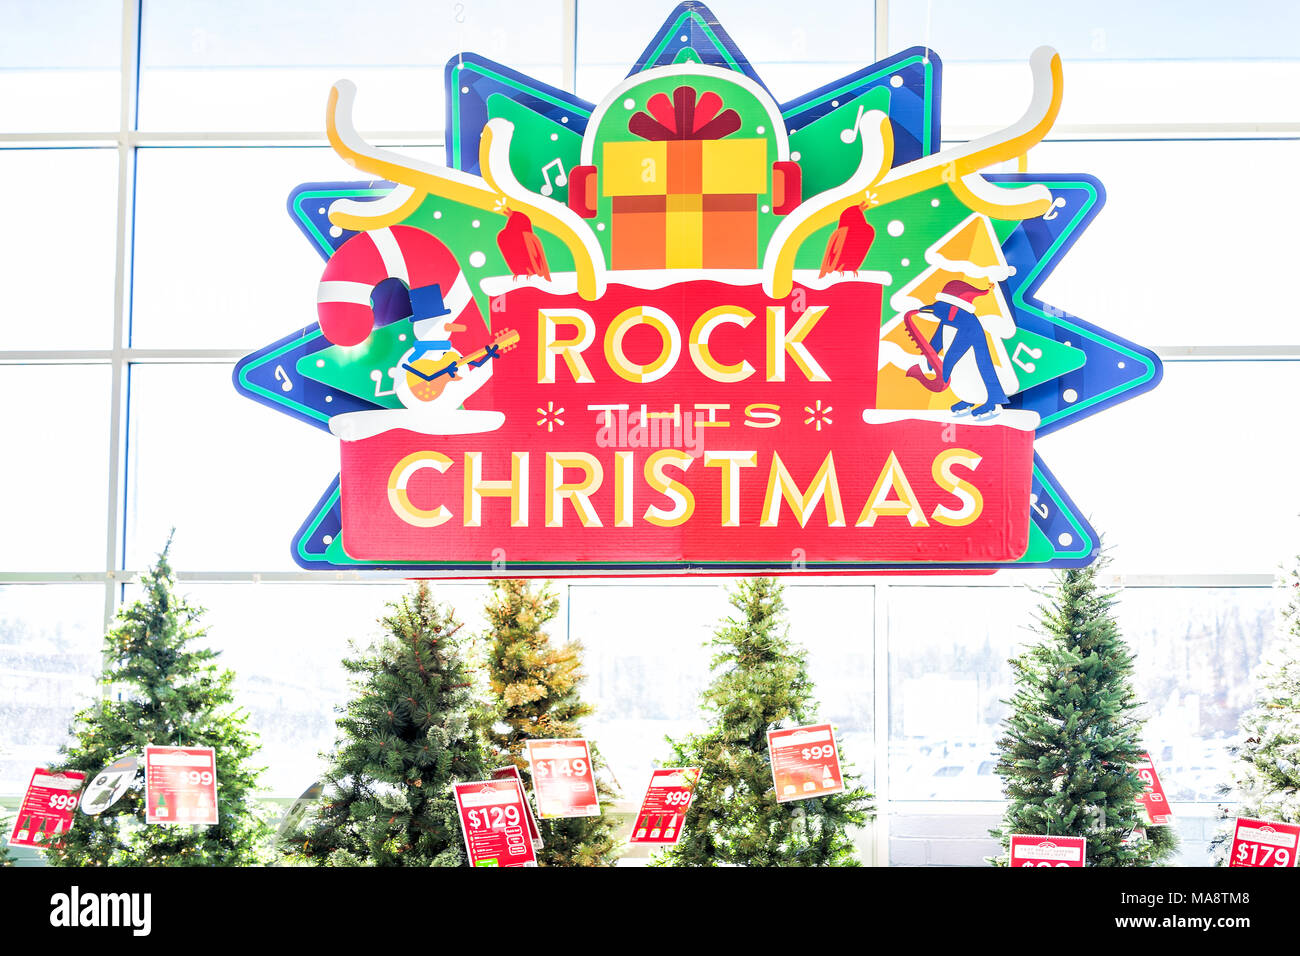 Burke, USA   November 24, 2017: Rock This Christmas Tree Display In Walmart